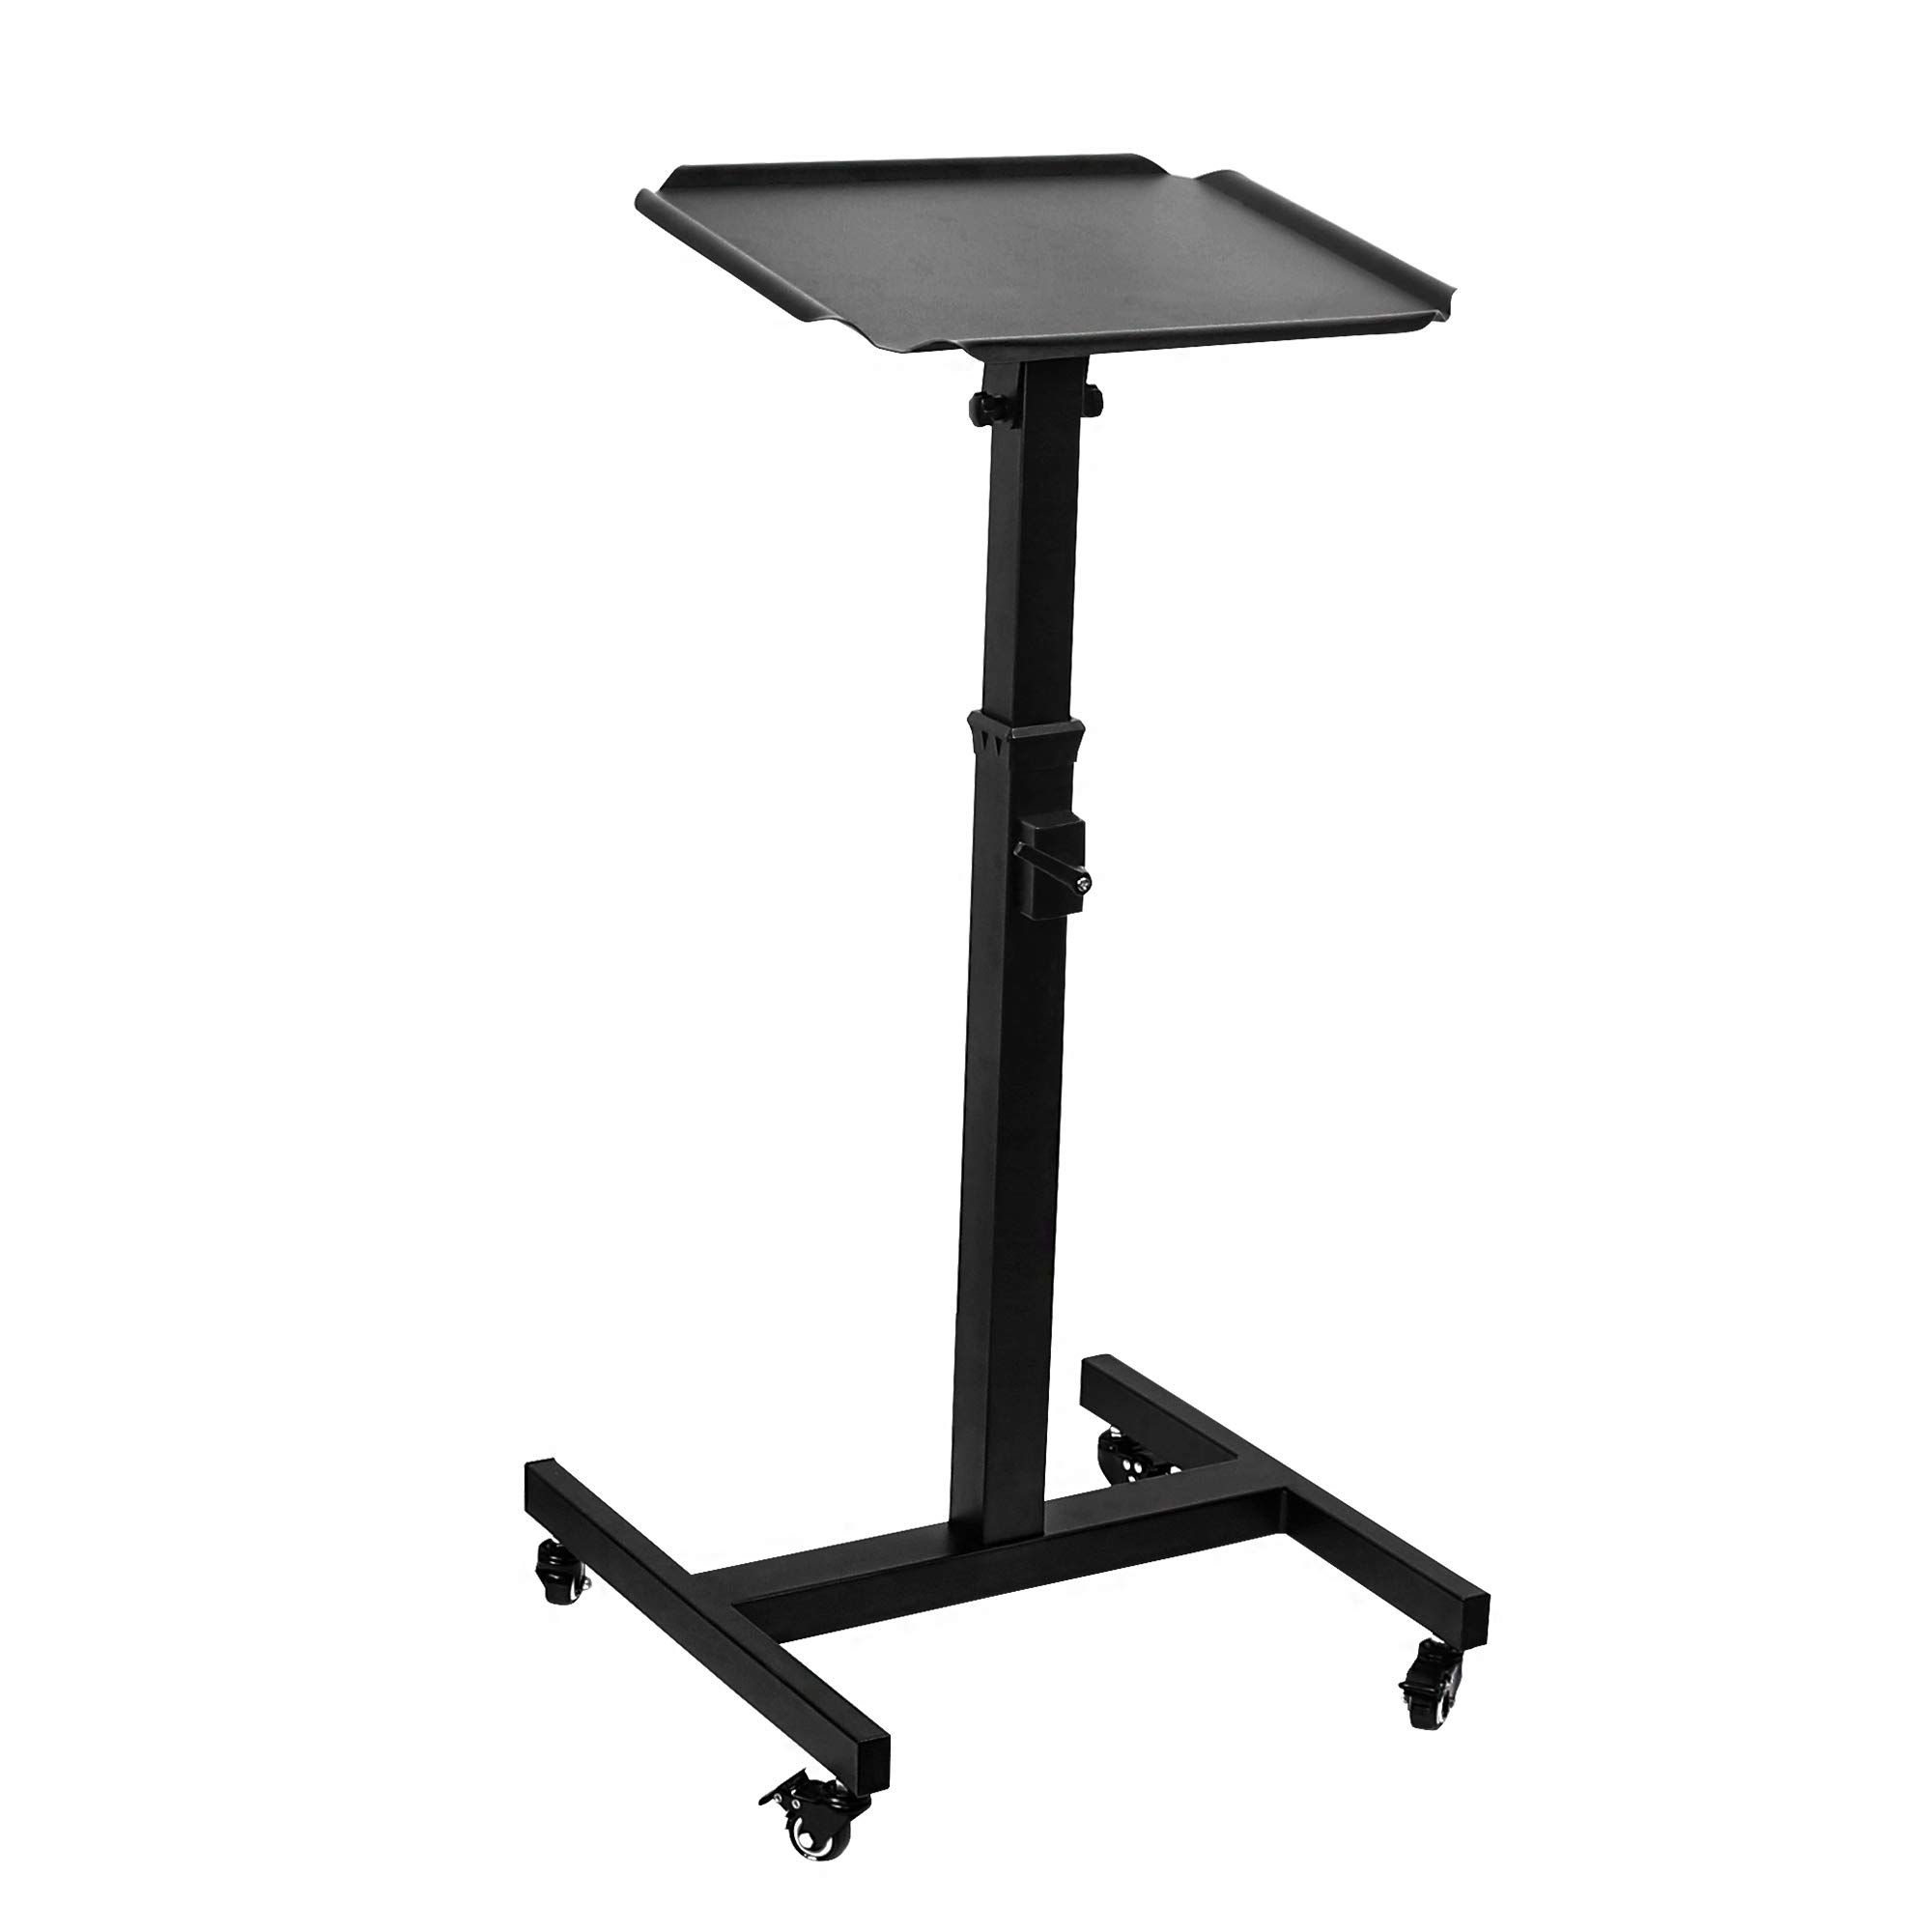 Ollypulse Black Projector Stand, Adjustable Height and Inclination Tripod Projector Laptop Stand with Tray, Projector Cart Bracket with Pulley, Projector Laptop Trolley Presentation Cart 36'' to 50''